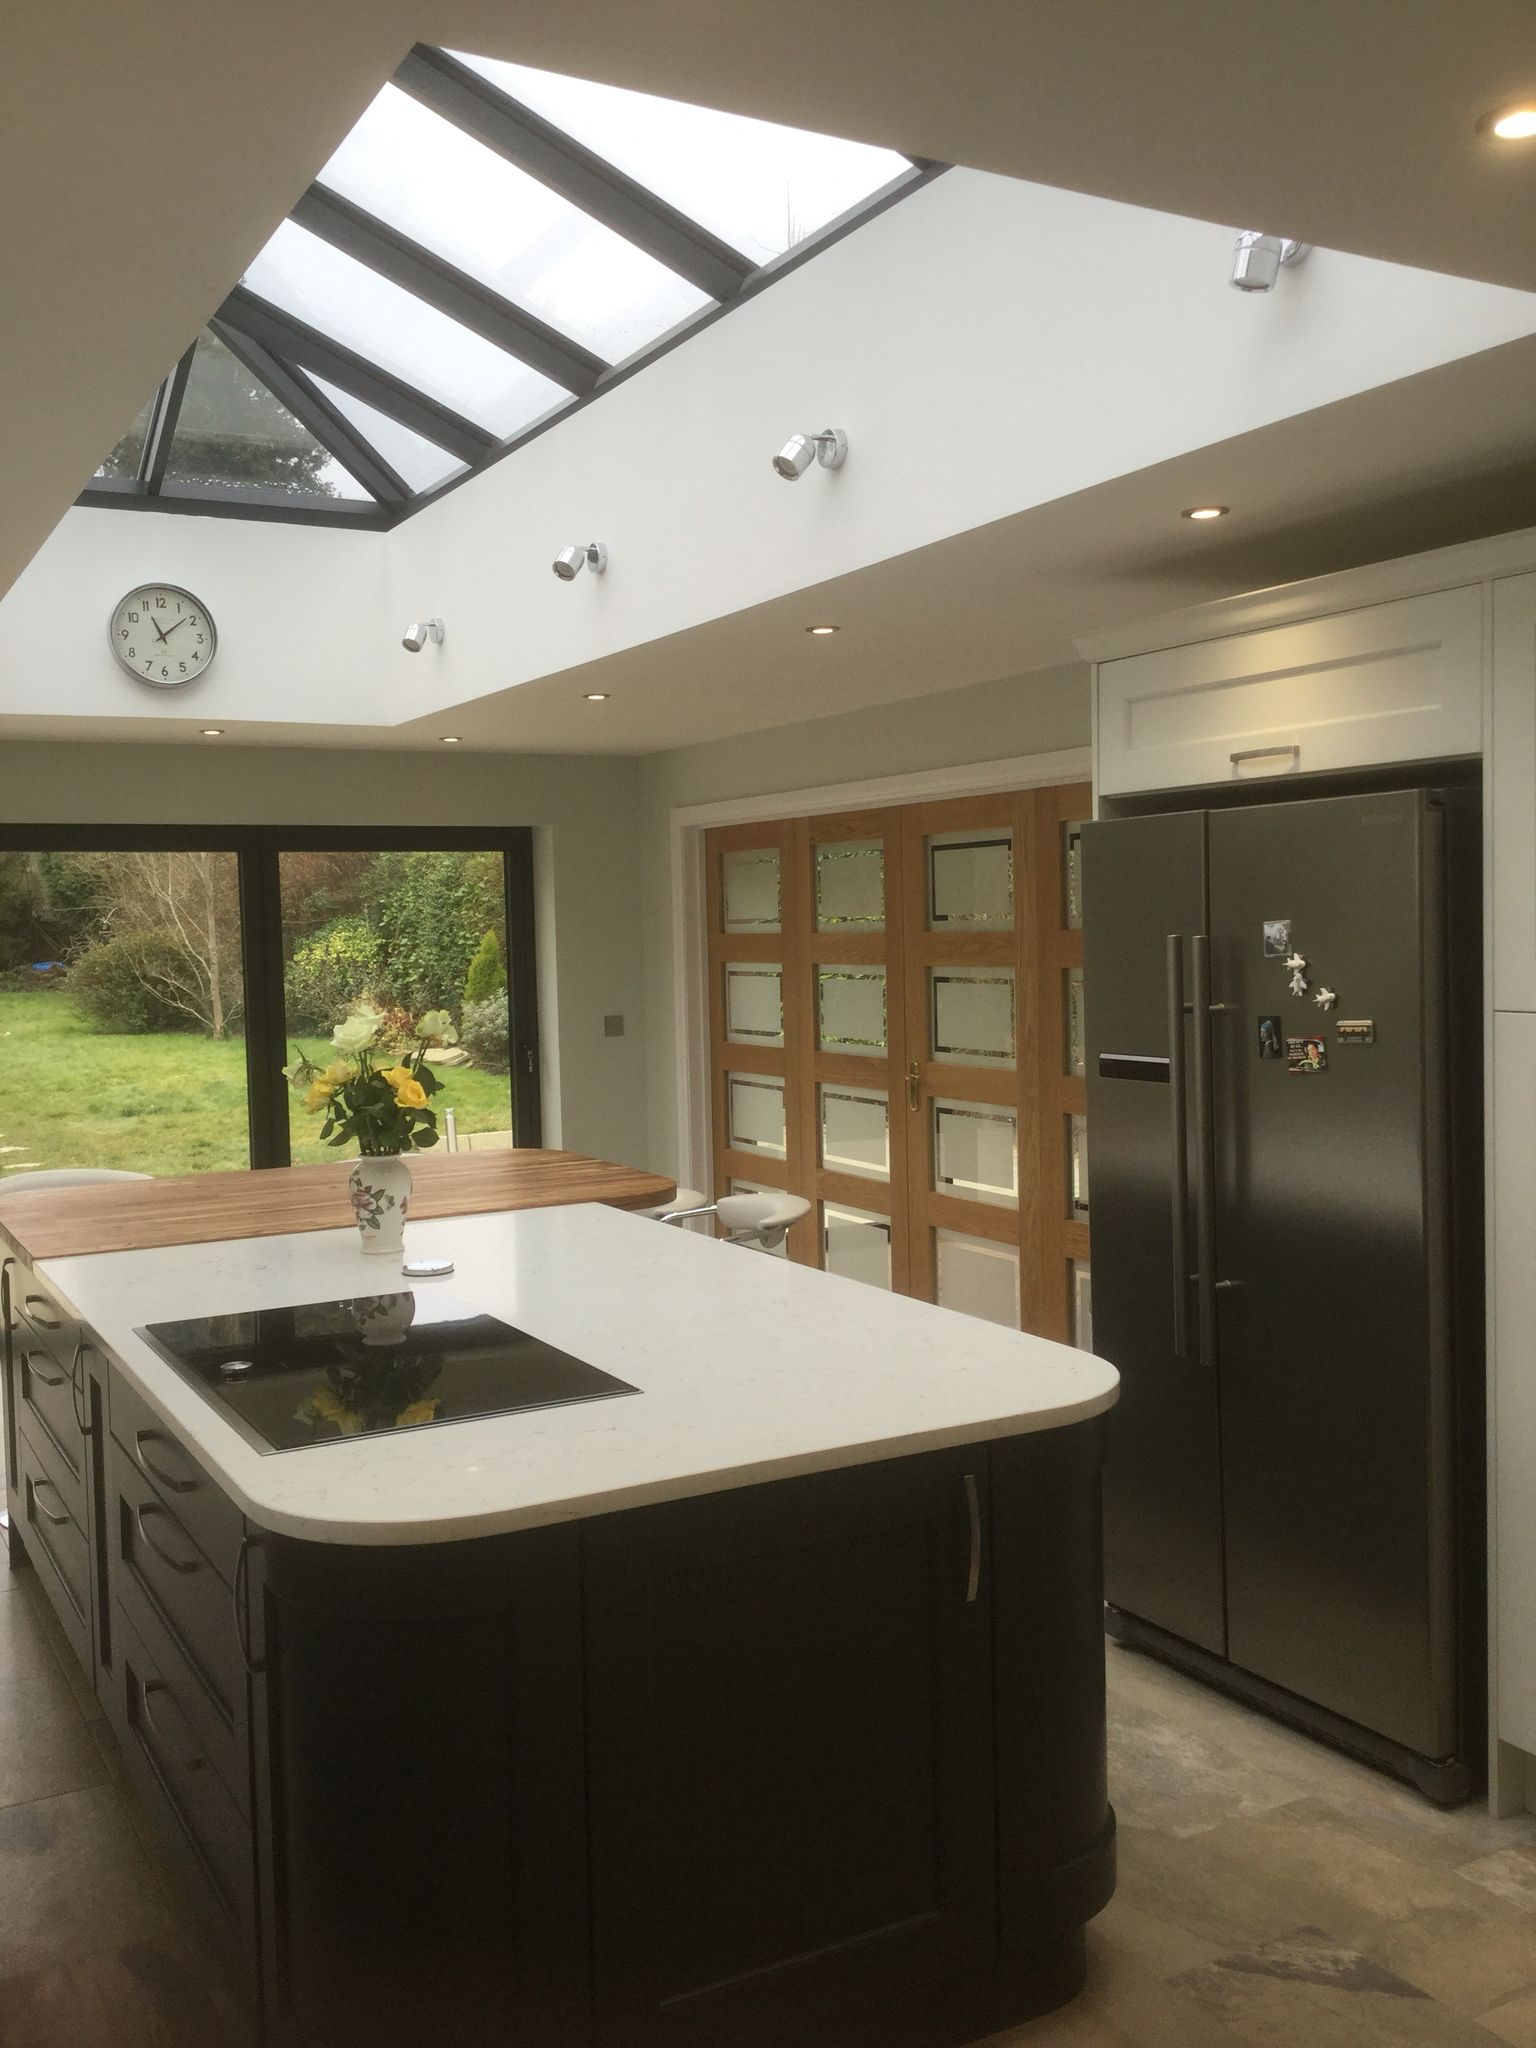 Roof Lantern Over Kitchen Island New Extension